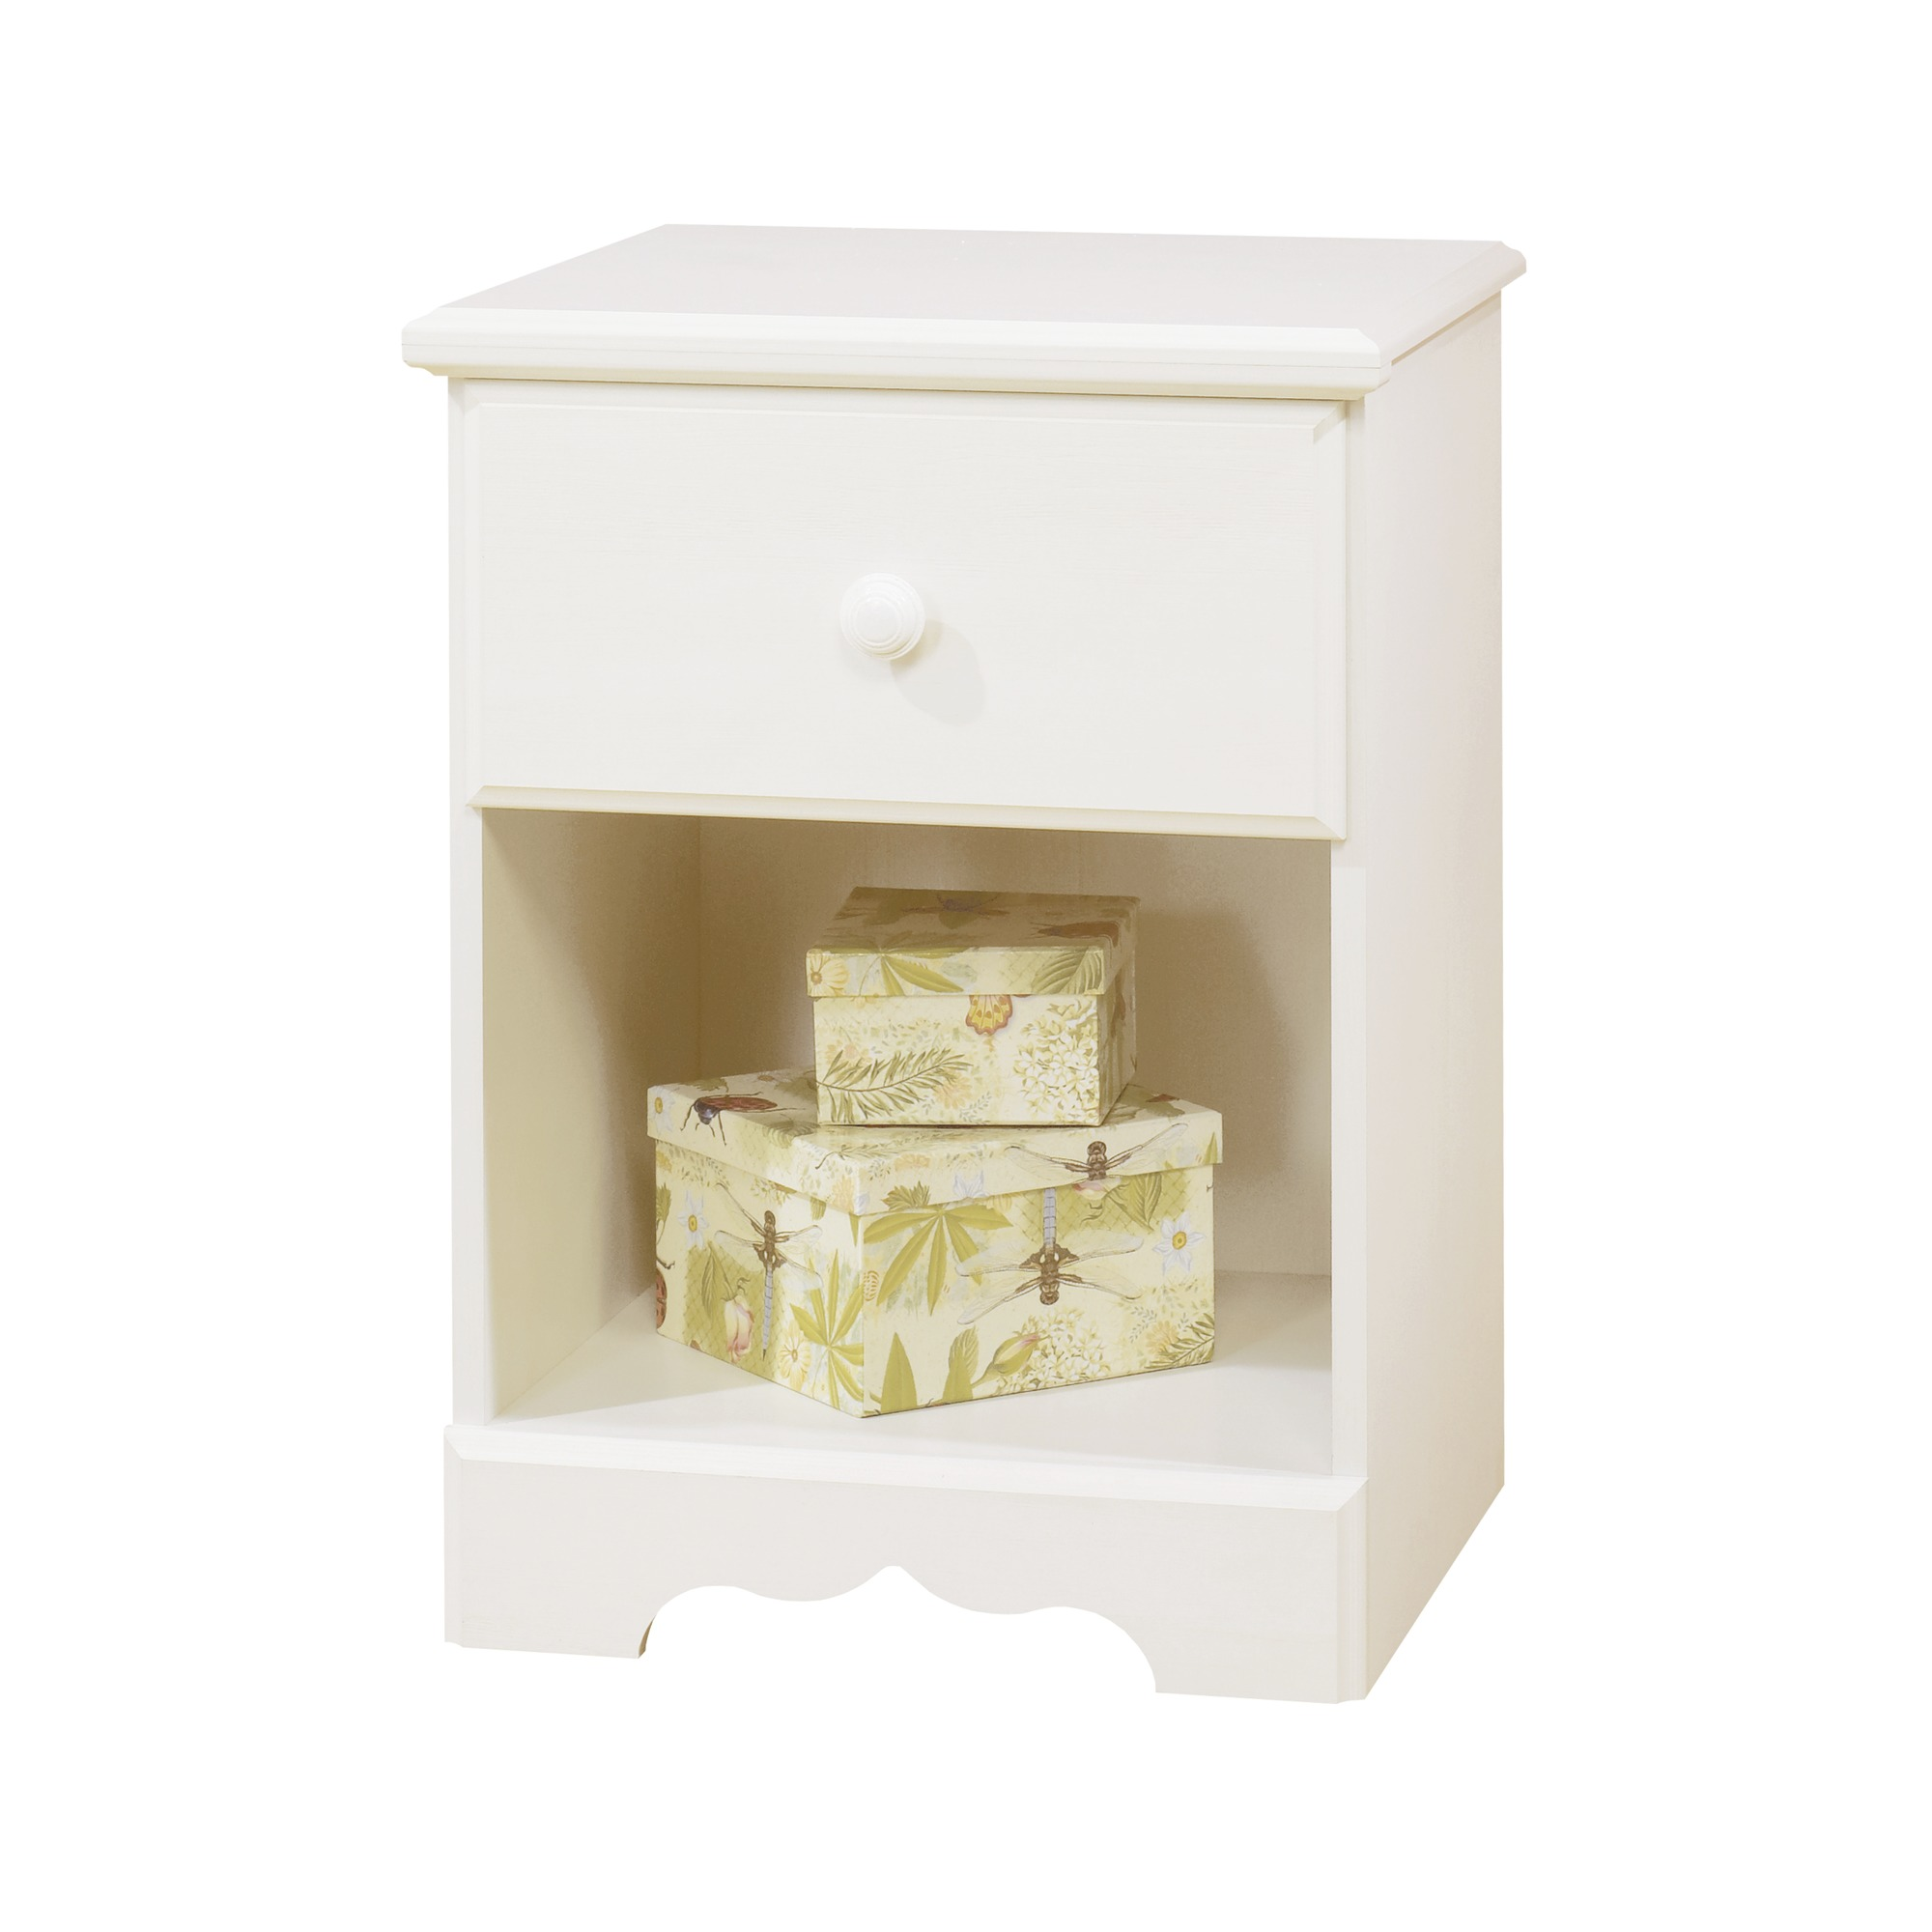 South Shore Summer Breeze 1 Drawer Kidsu0027 Nightstand, Multiple Finishes